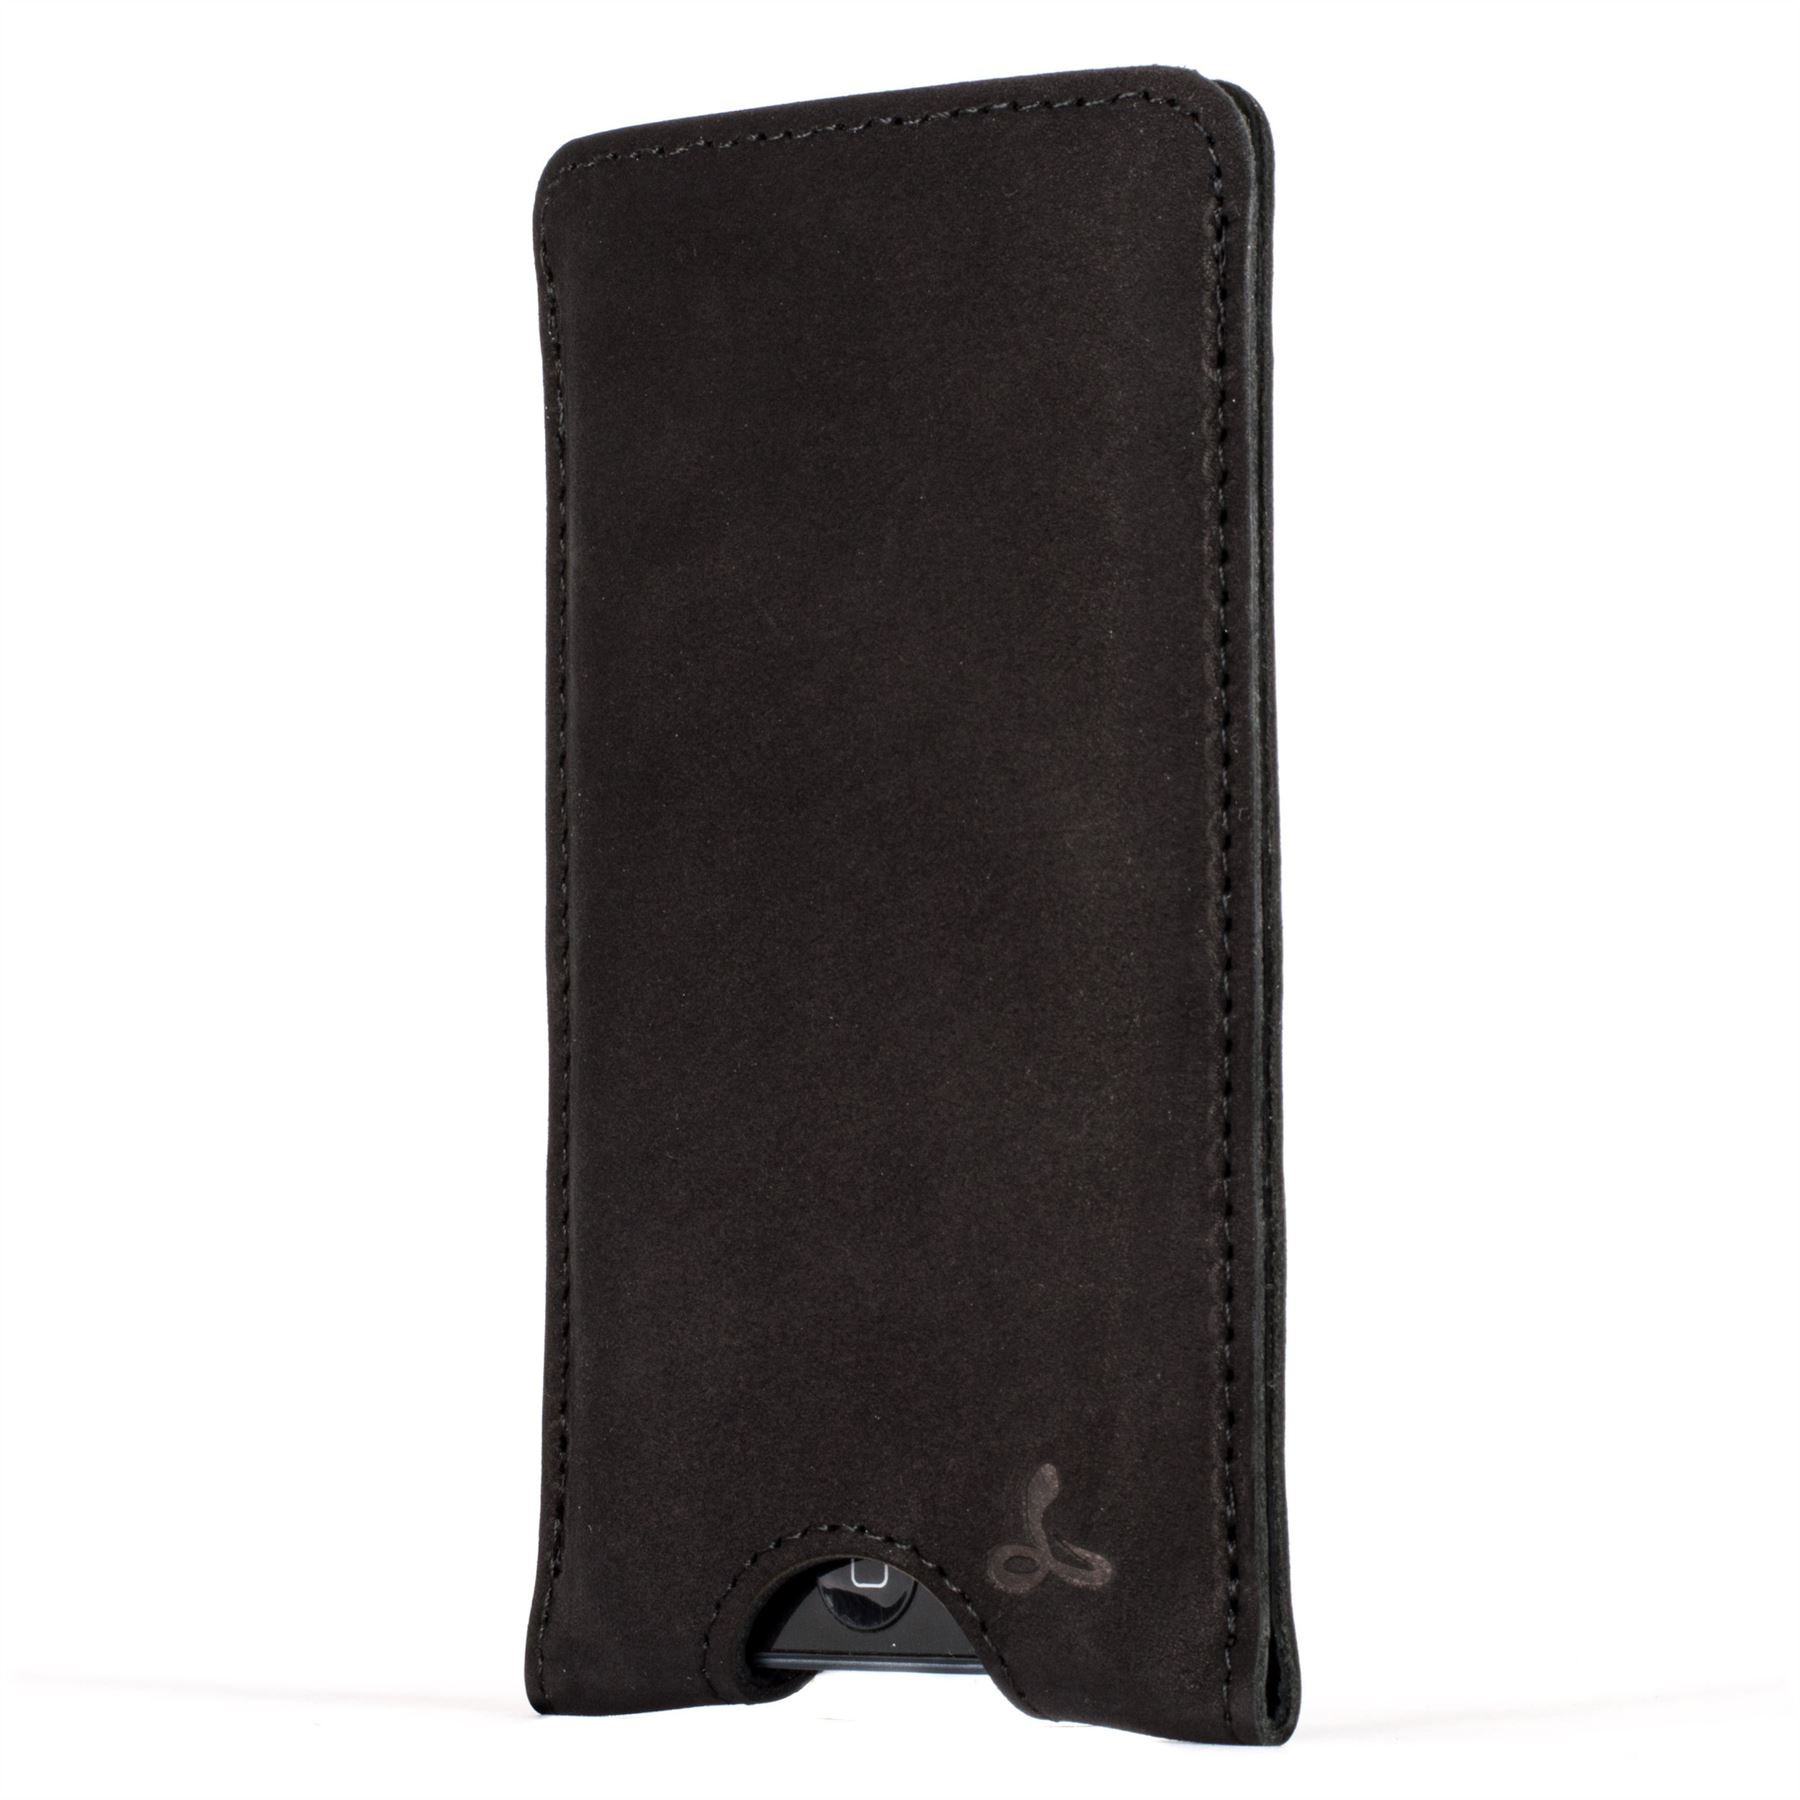 Snakehive apple iphone 5 5s se vintage nubuck leather pouch case cover ebay - Iphone 5s leather case ...